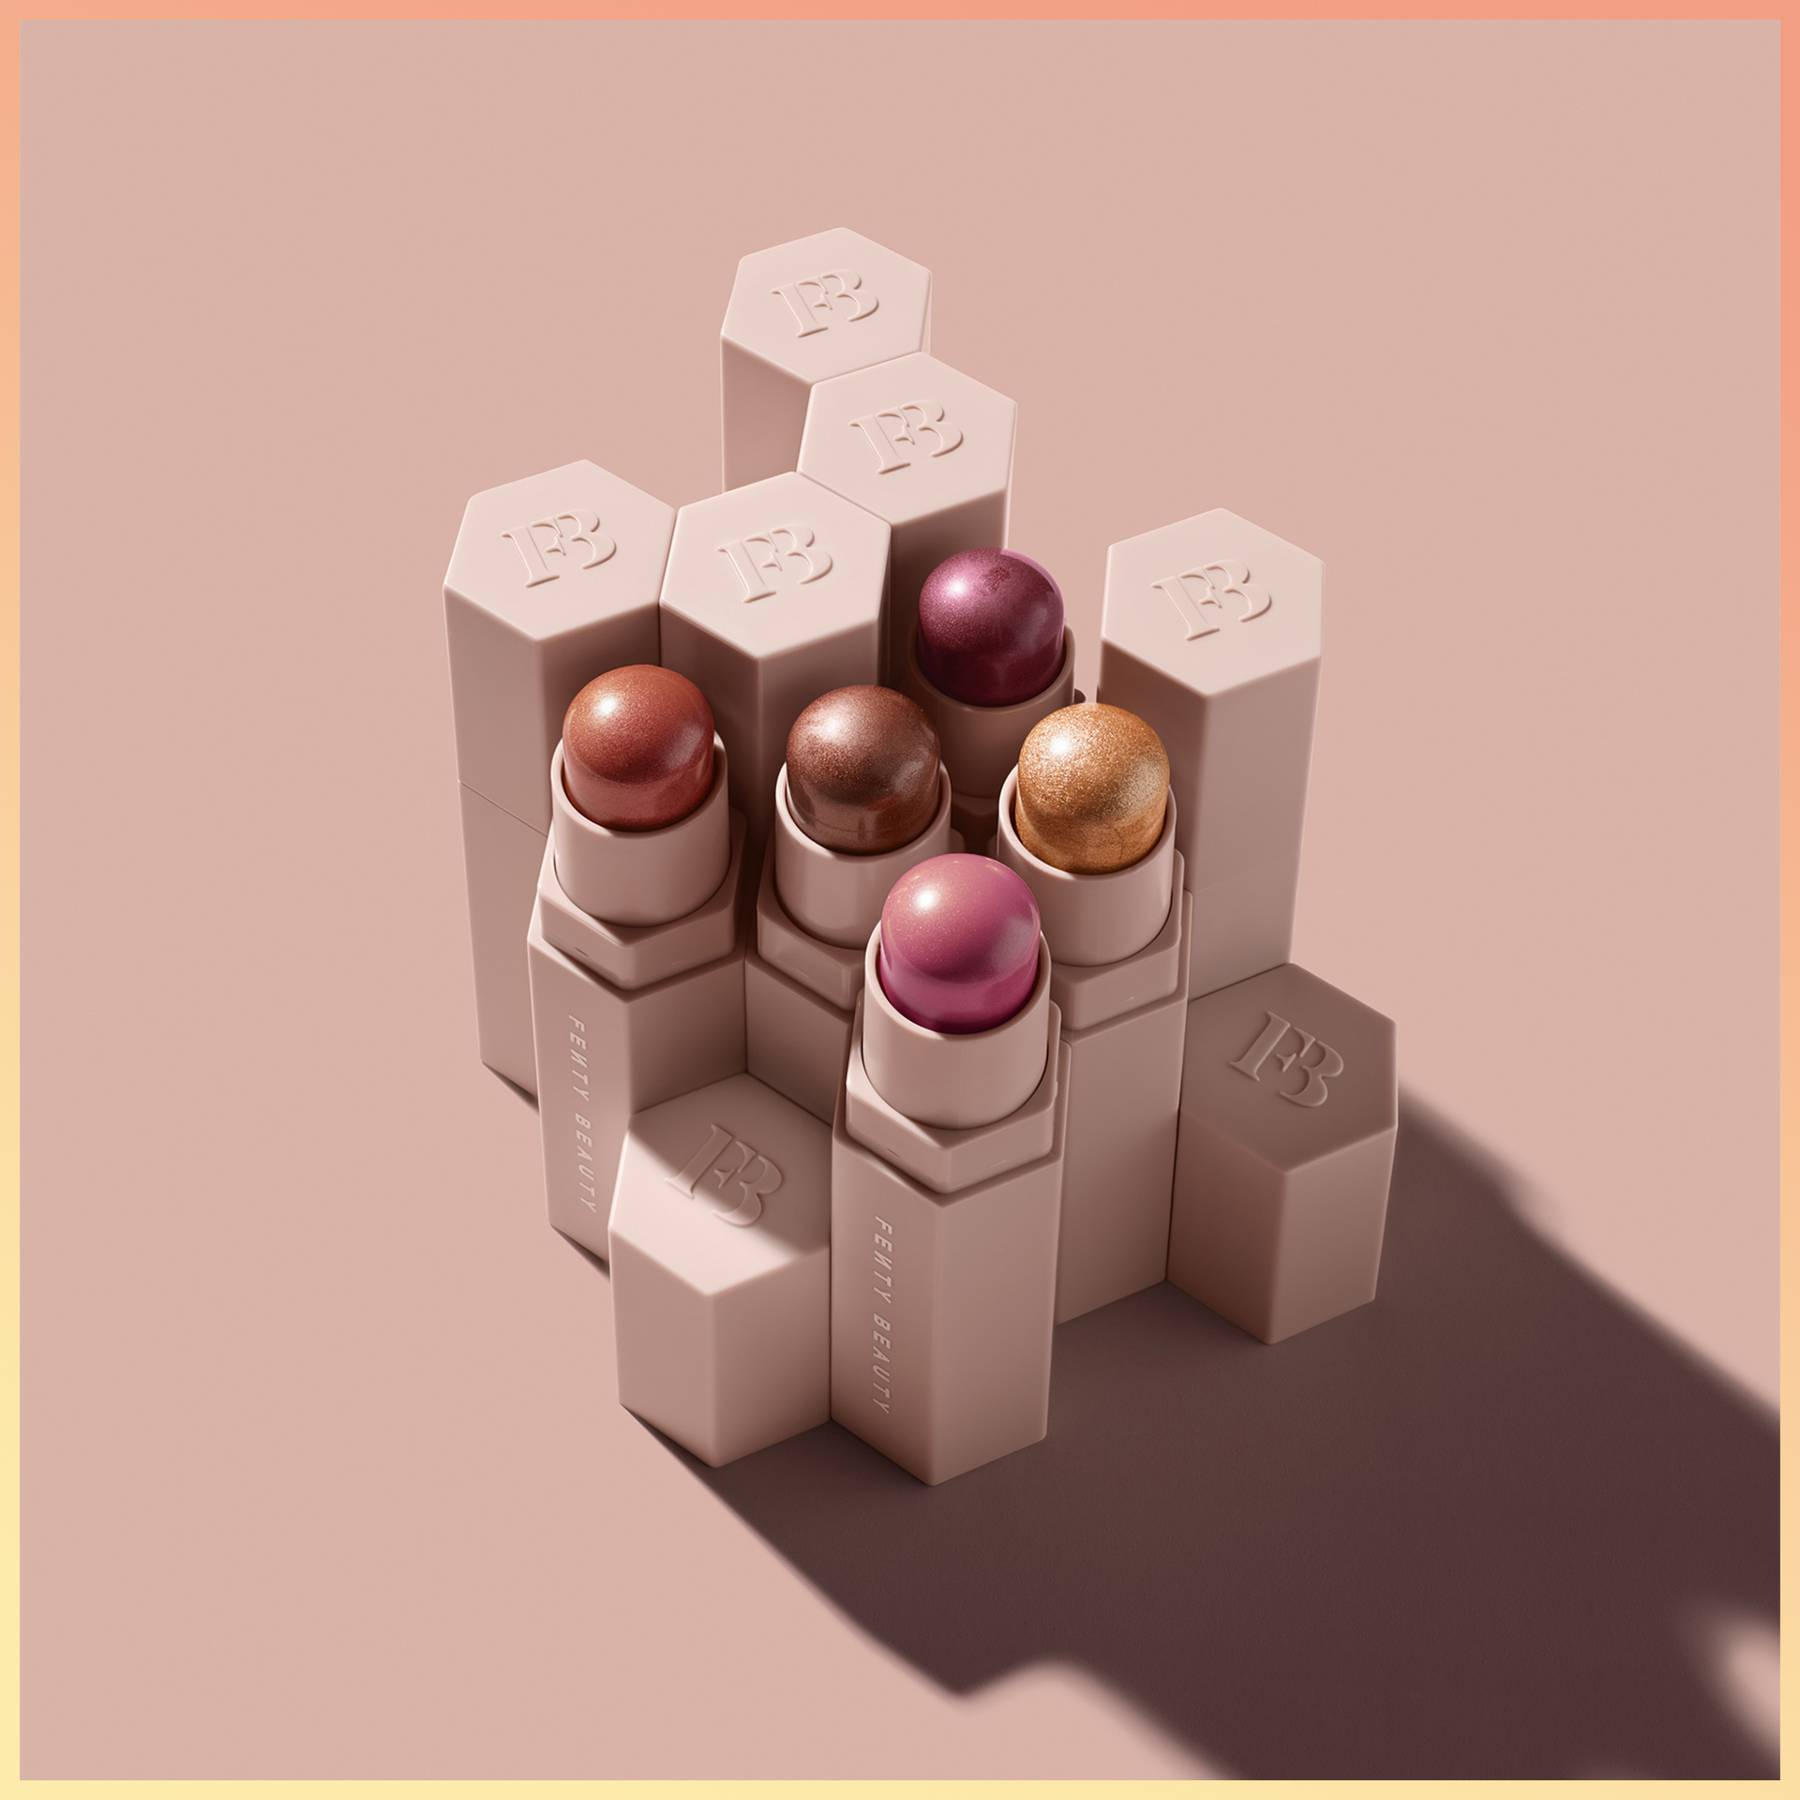 Fenty Beauty just dropped five new Match Stix shades we totally need for the last days of summer